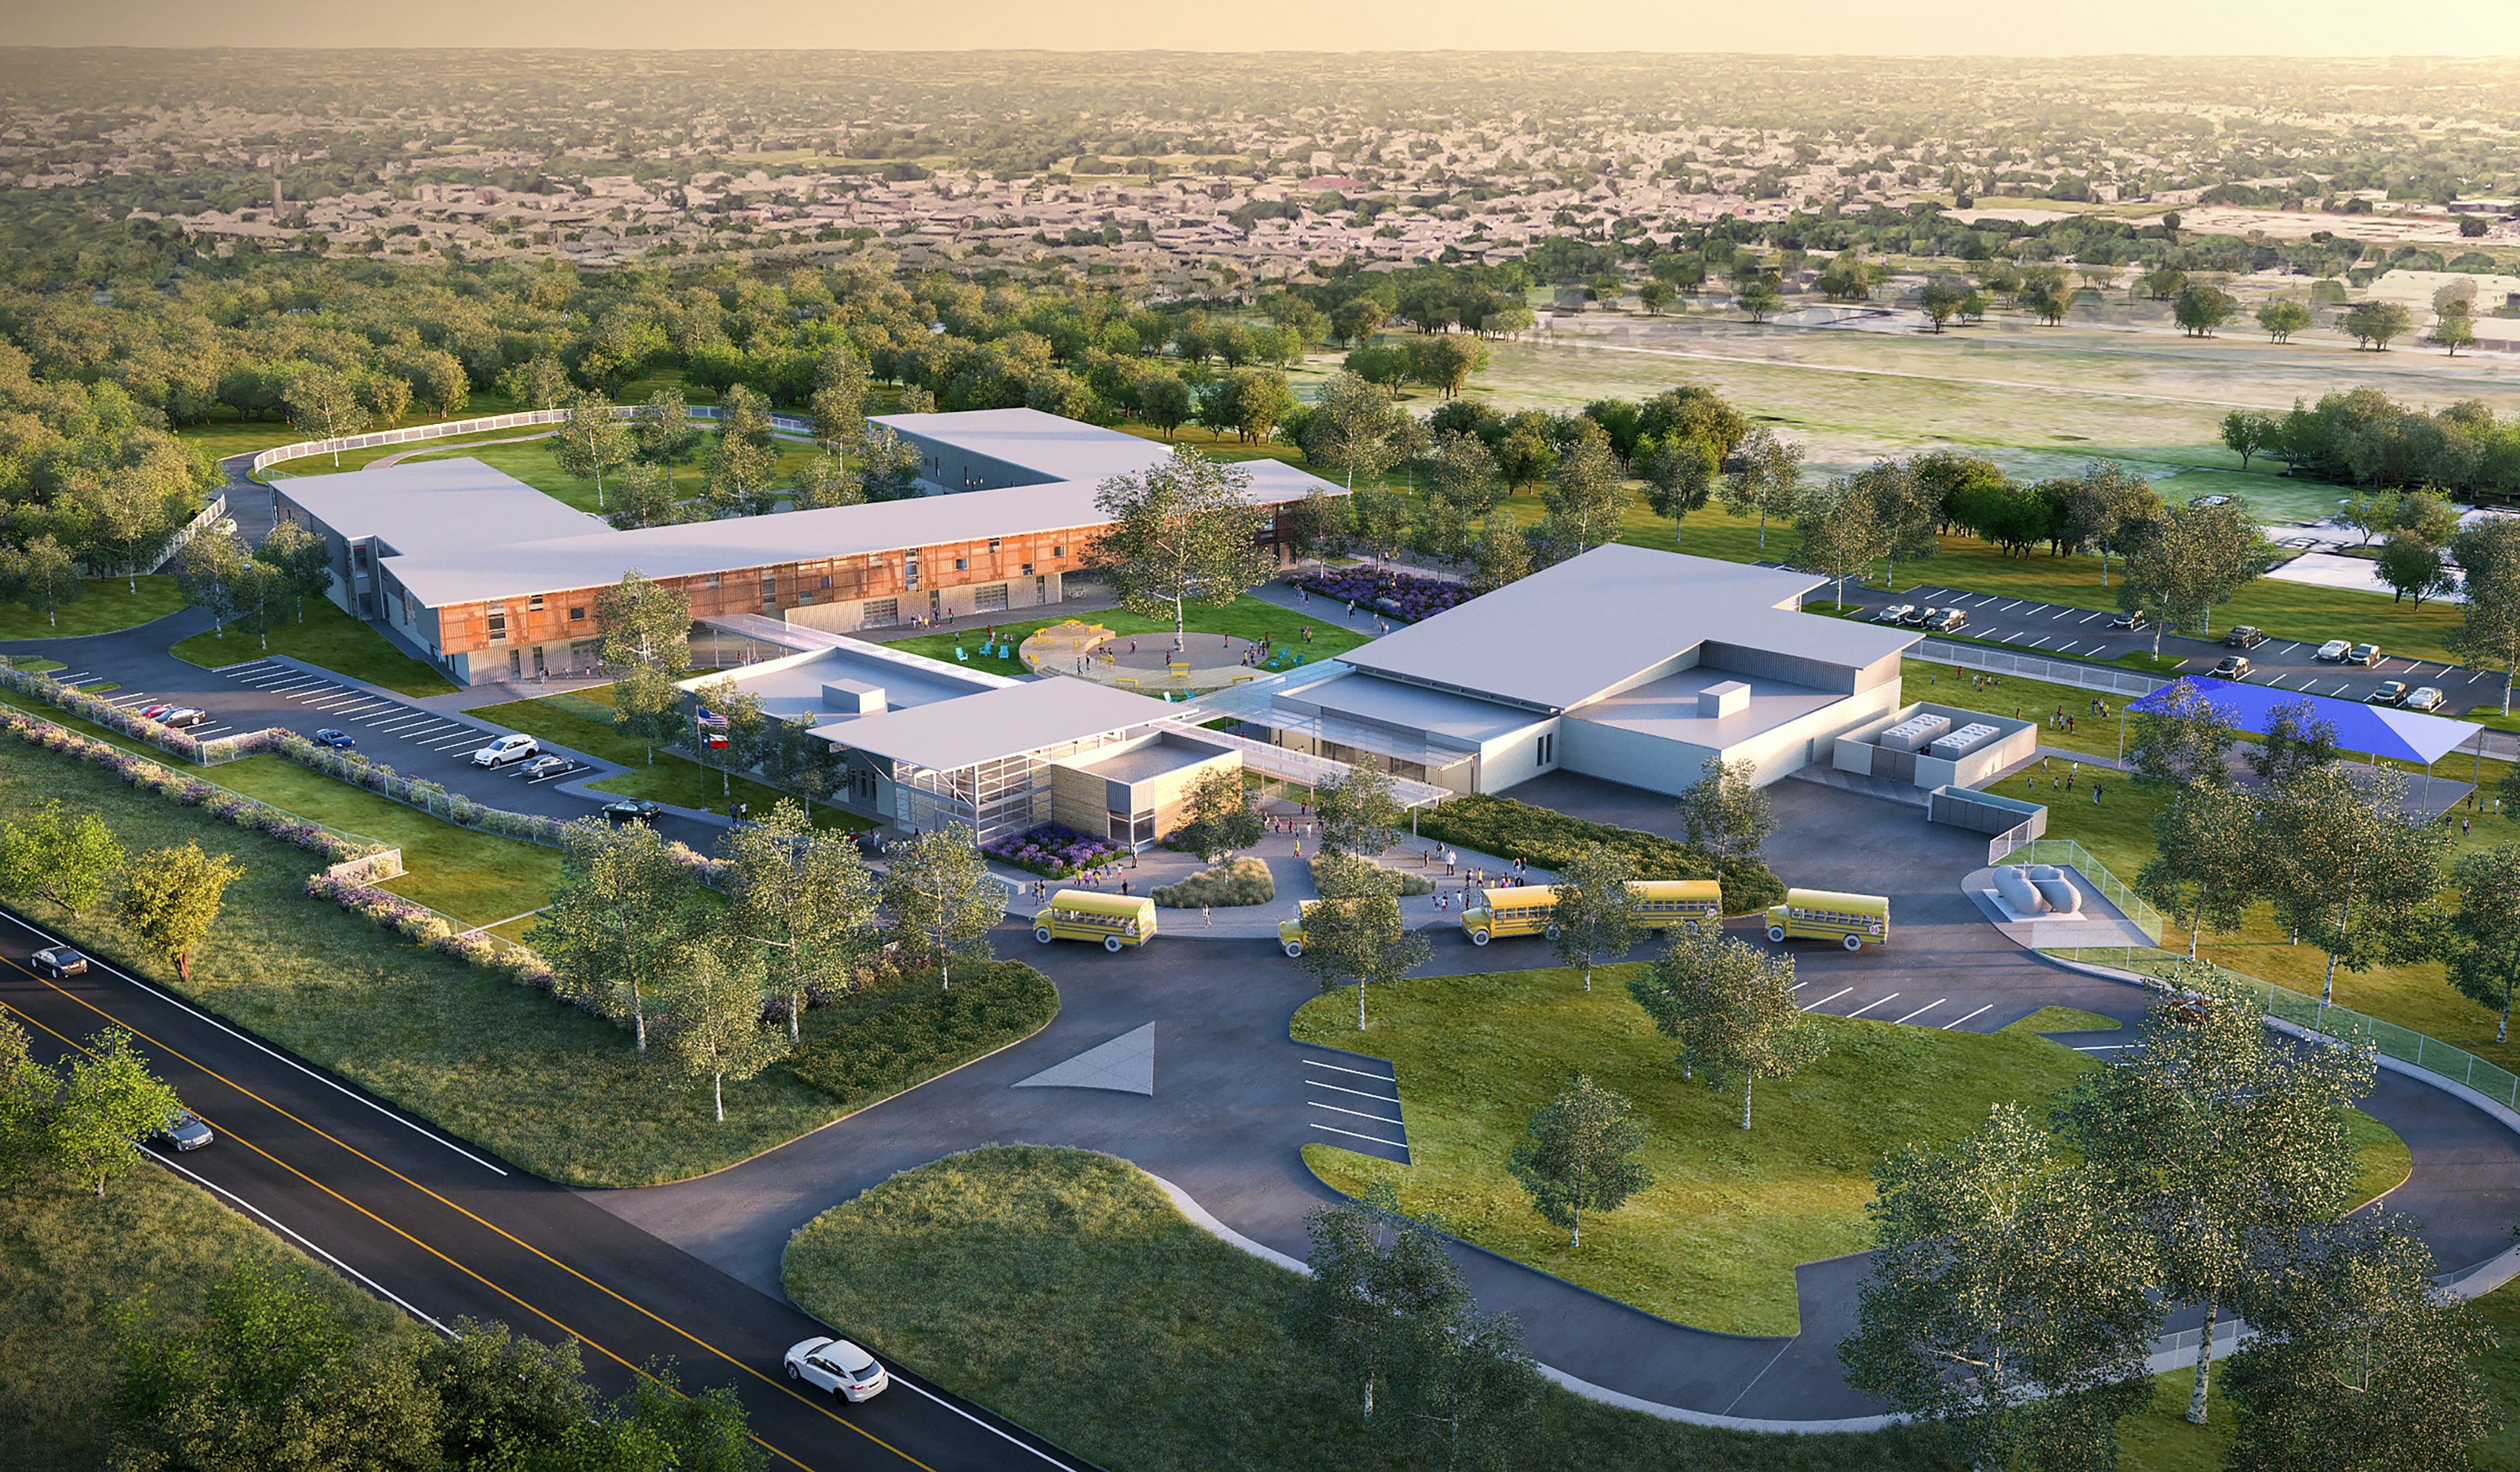 Designing a New School for Austin, Texas